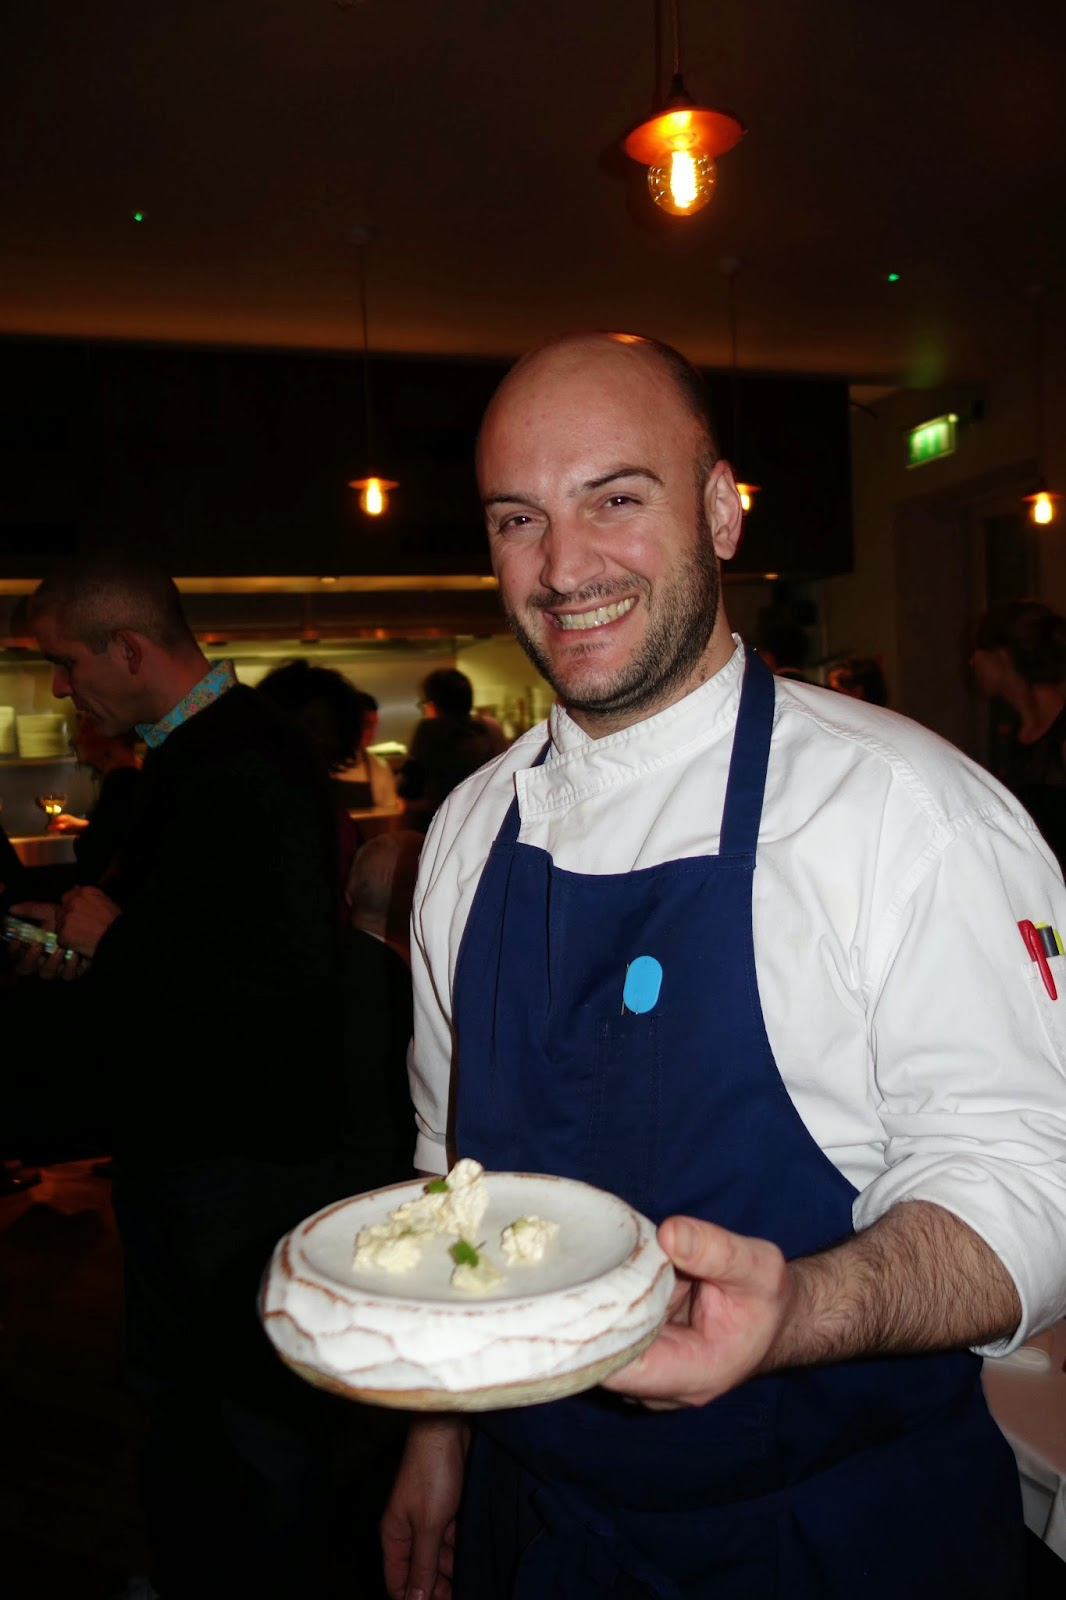 Chef holding trout meringues